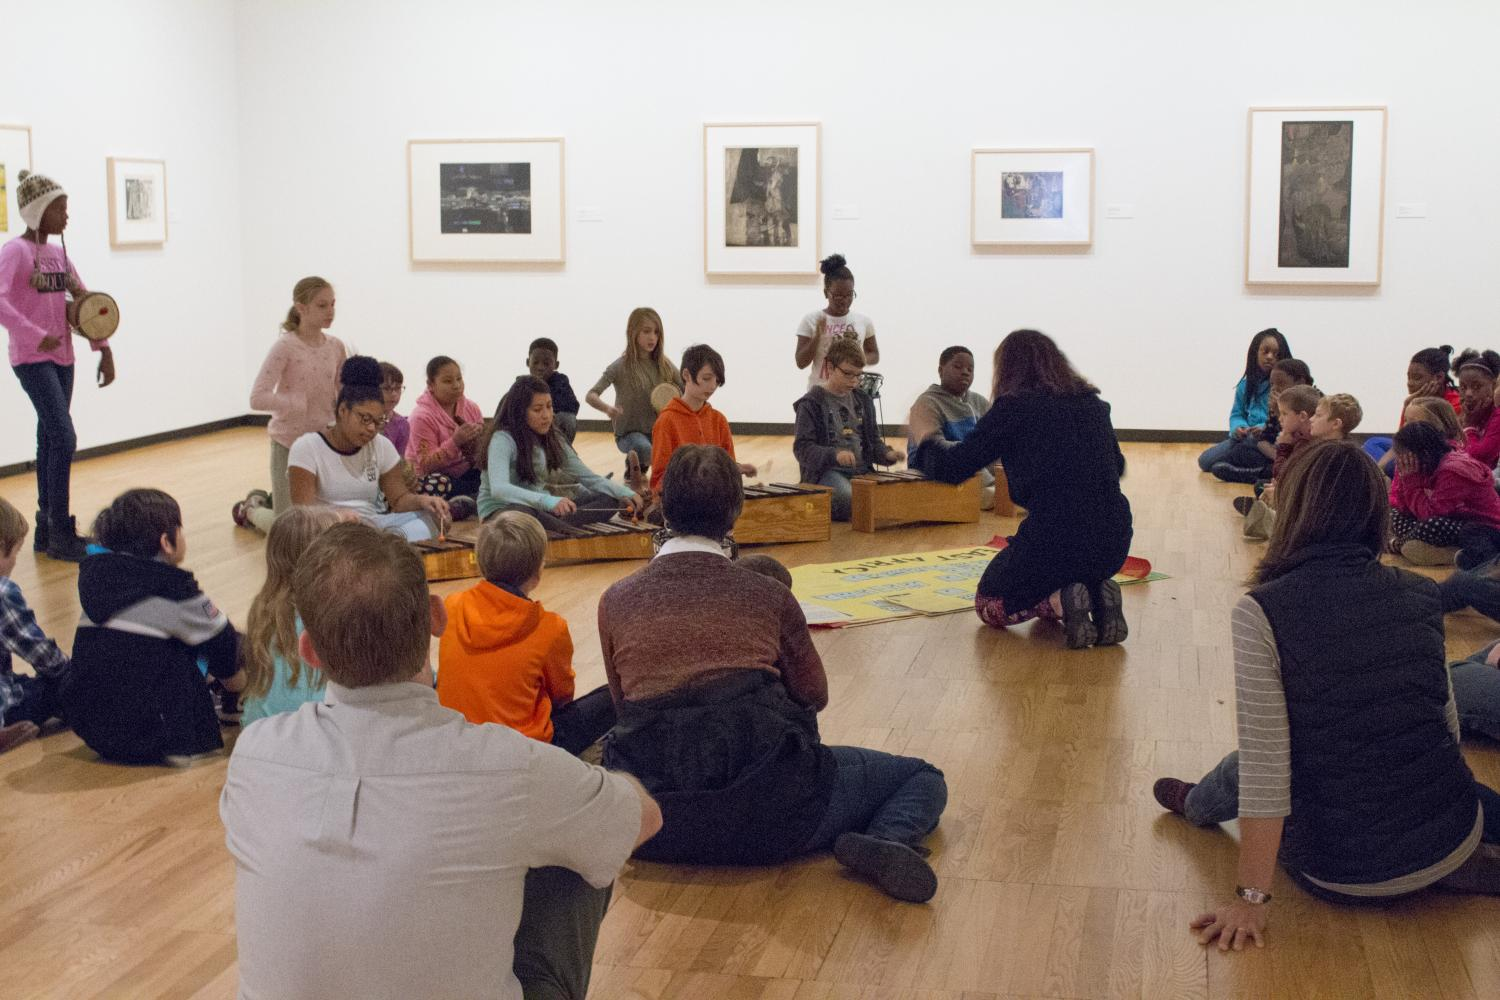 KAM–WAM students from Southside Elementary perform music for parents in the Gelvin Noel Gallery, 2017.